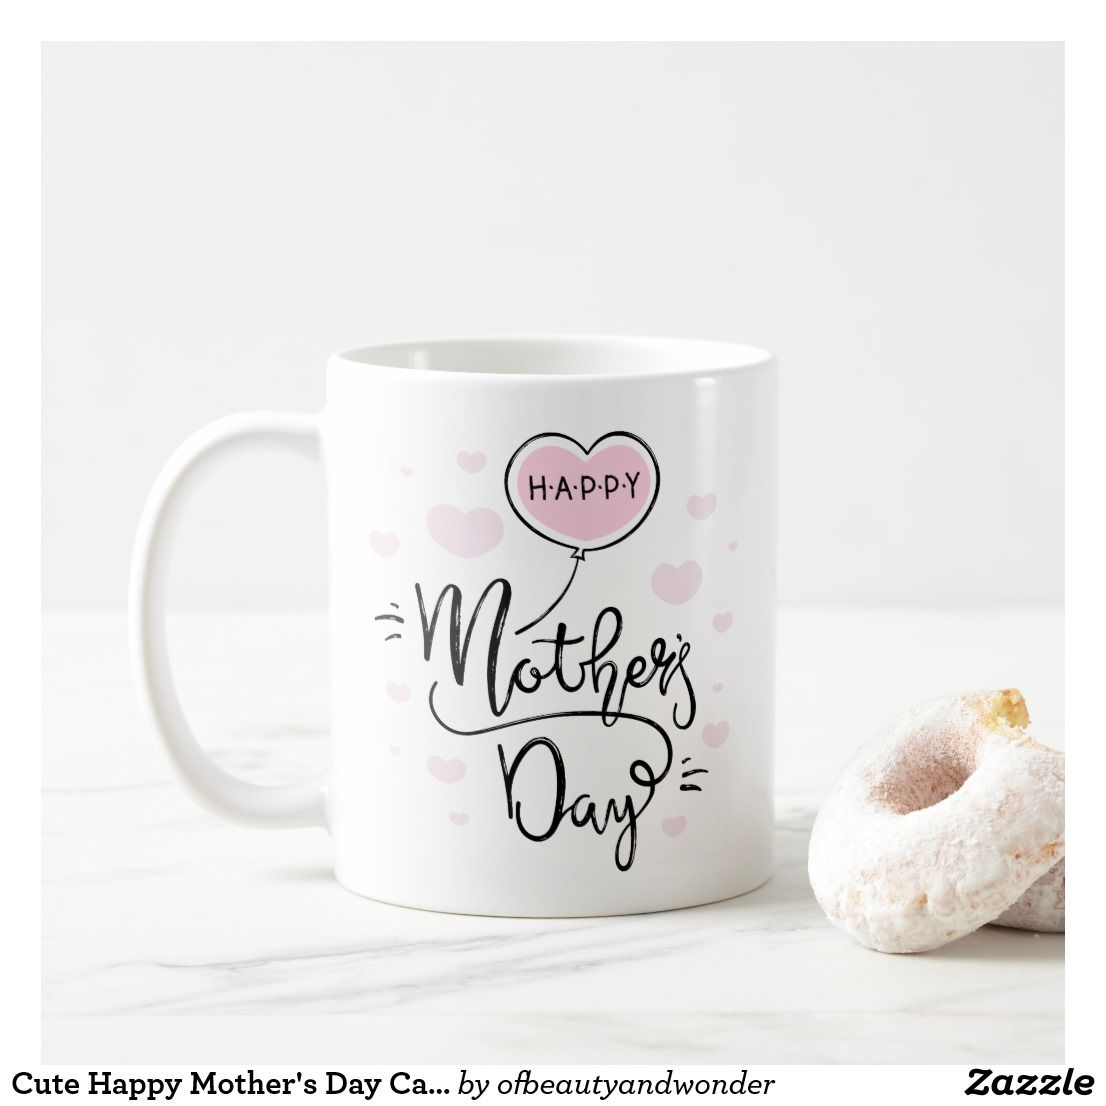 Cute Happy Mother S Day Calligraphy Coffee Mug Zazzle Com In 2021 Happy Mother S Day Calligraphy Happy Mothers Day Mother S Day Mugs